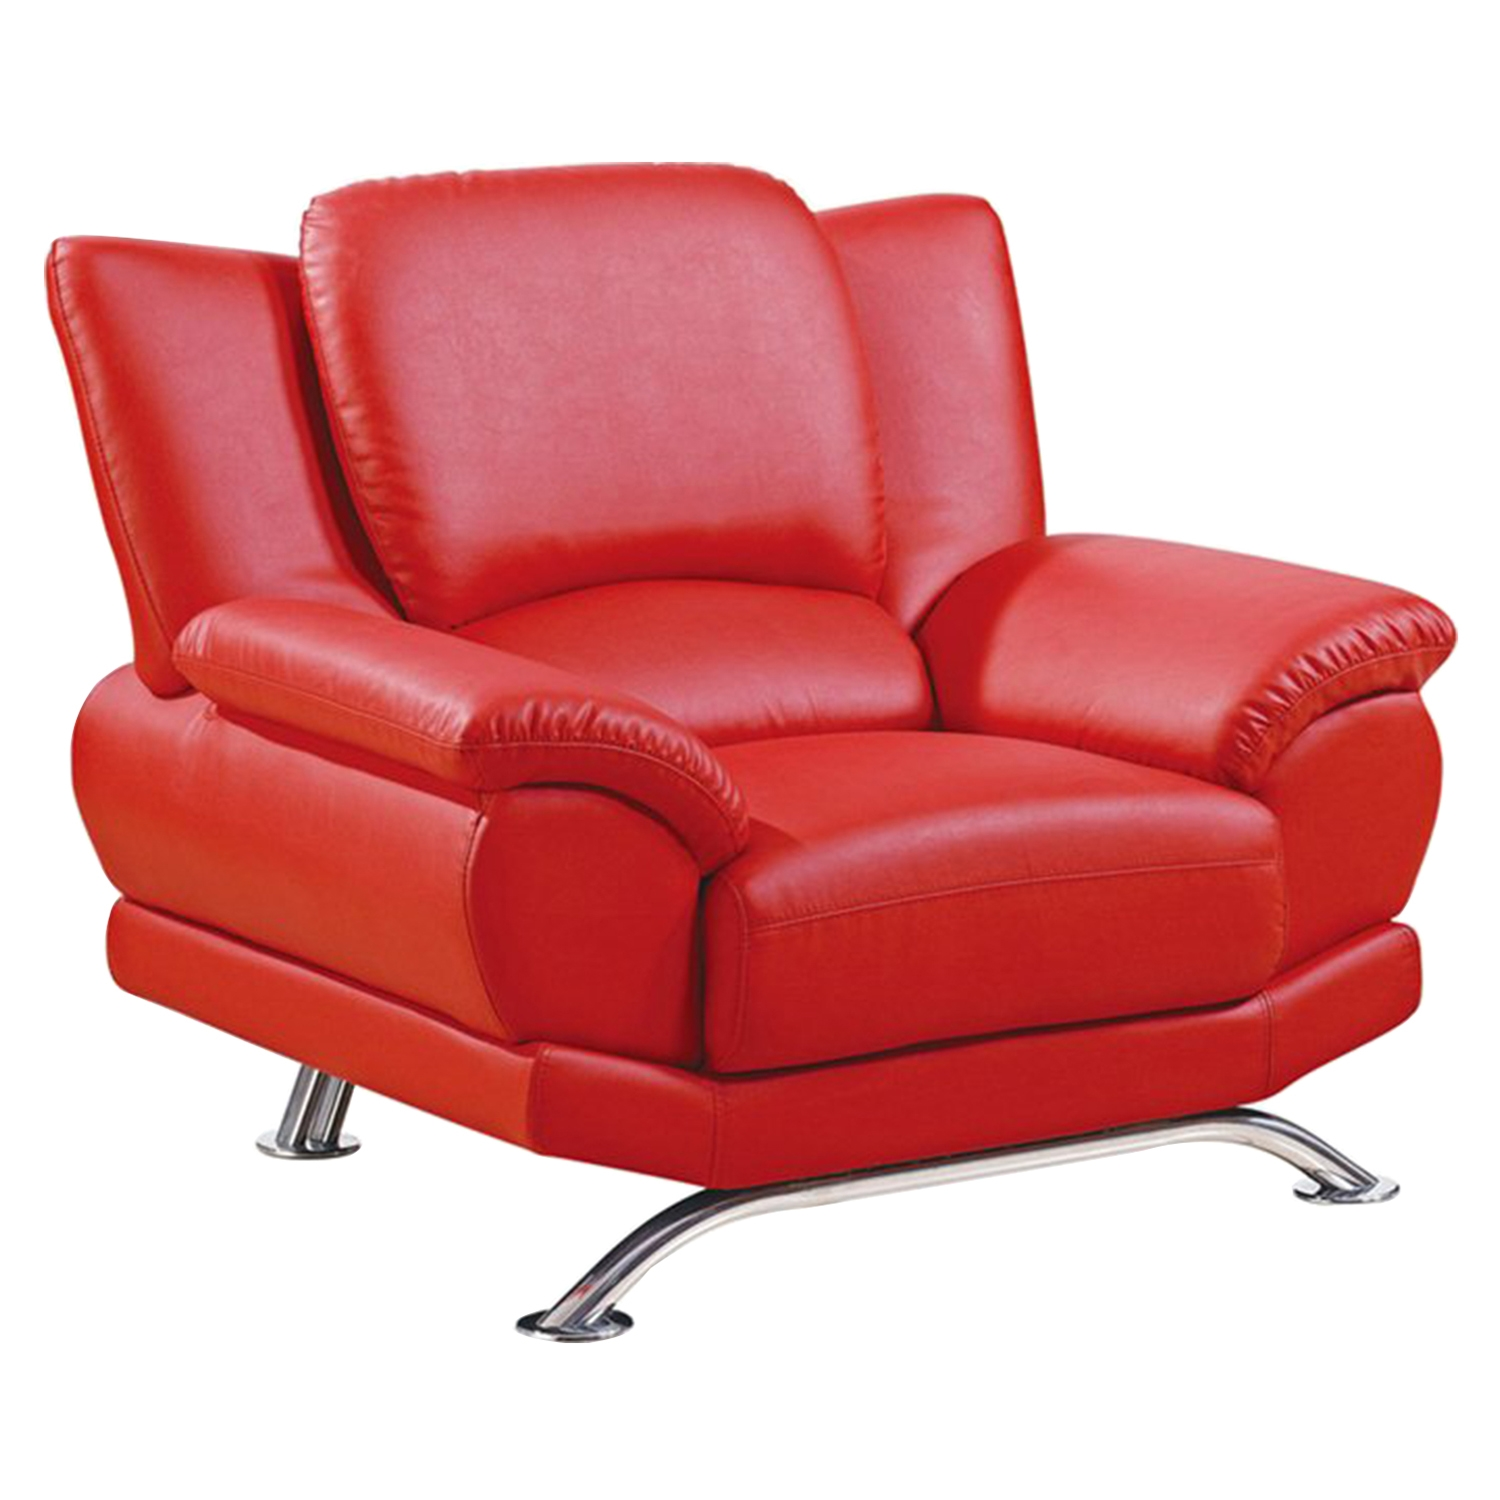 Jesus Leather Chair, Red